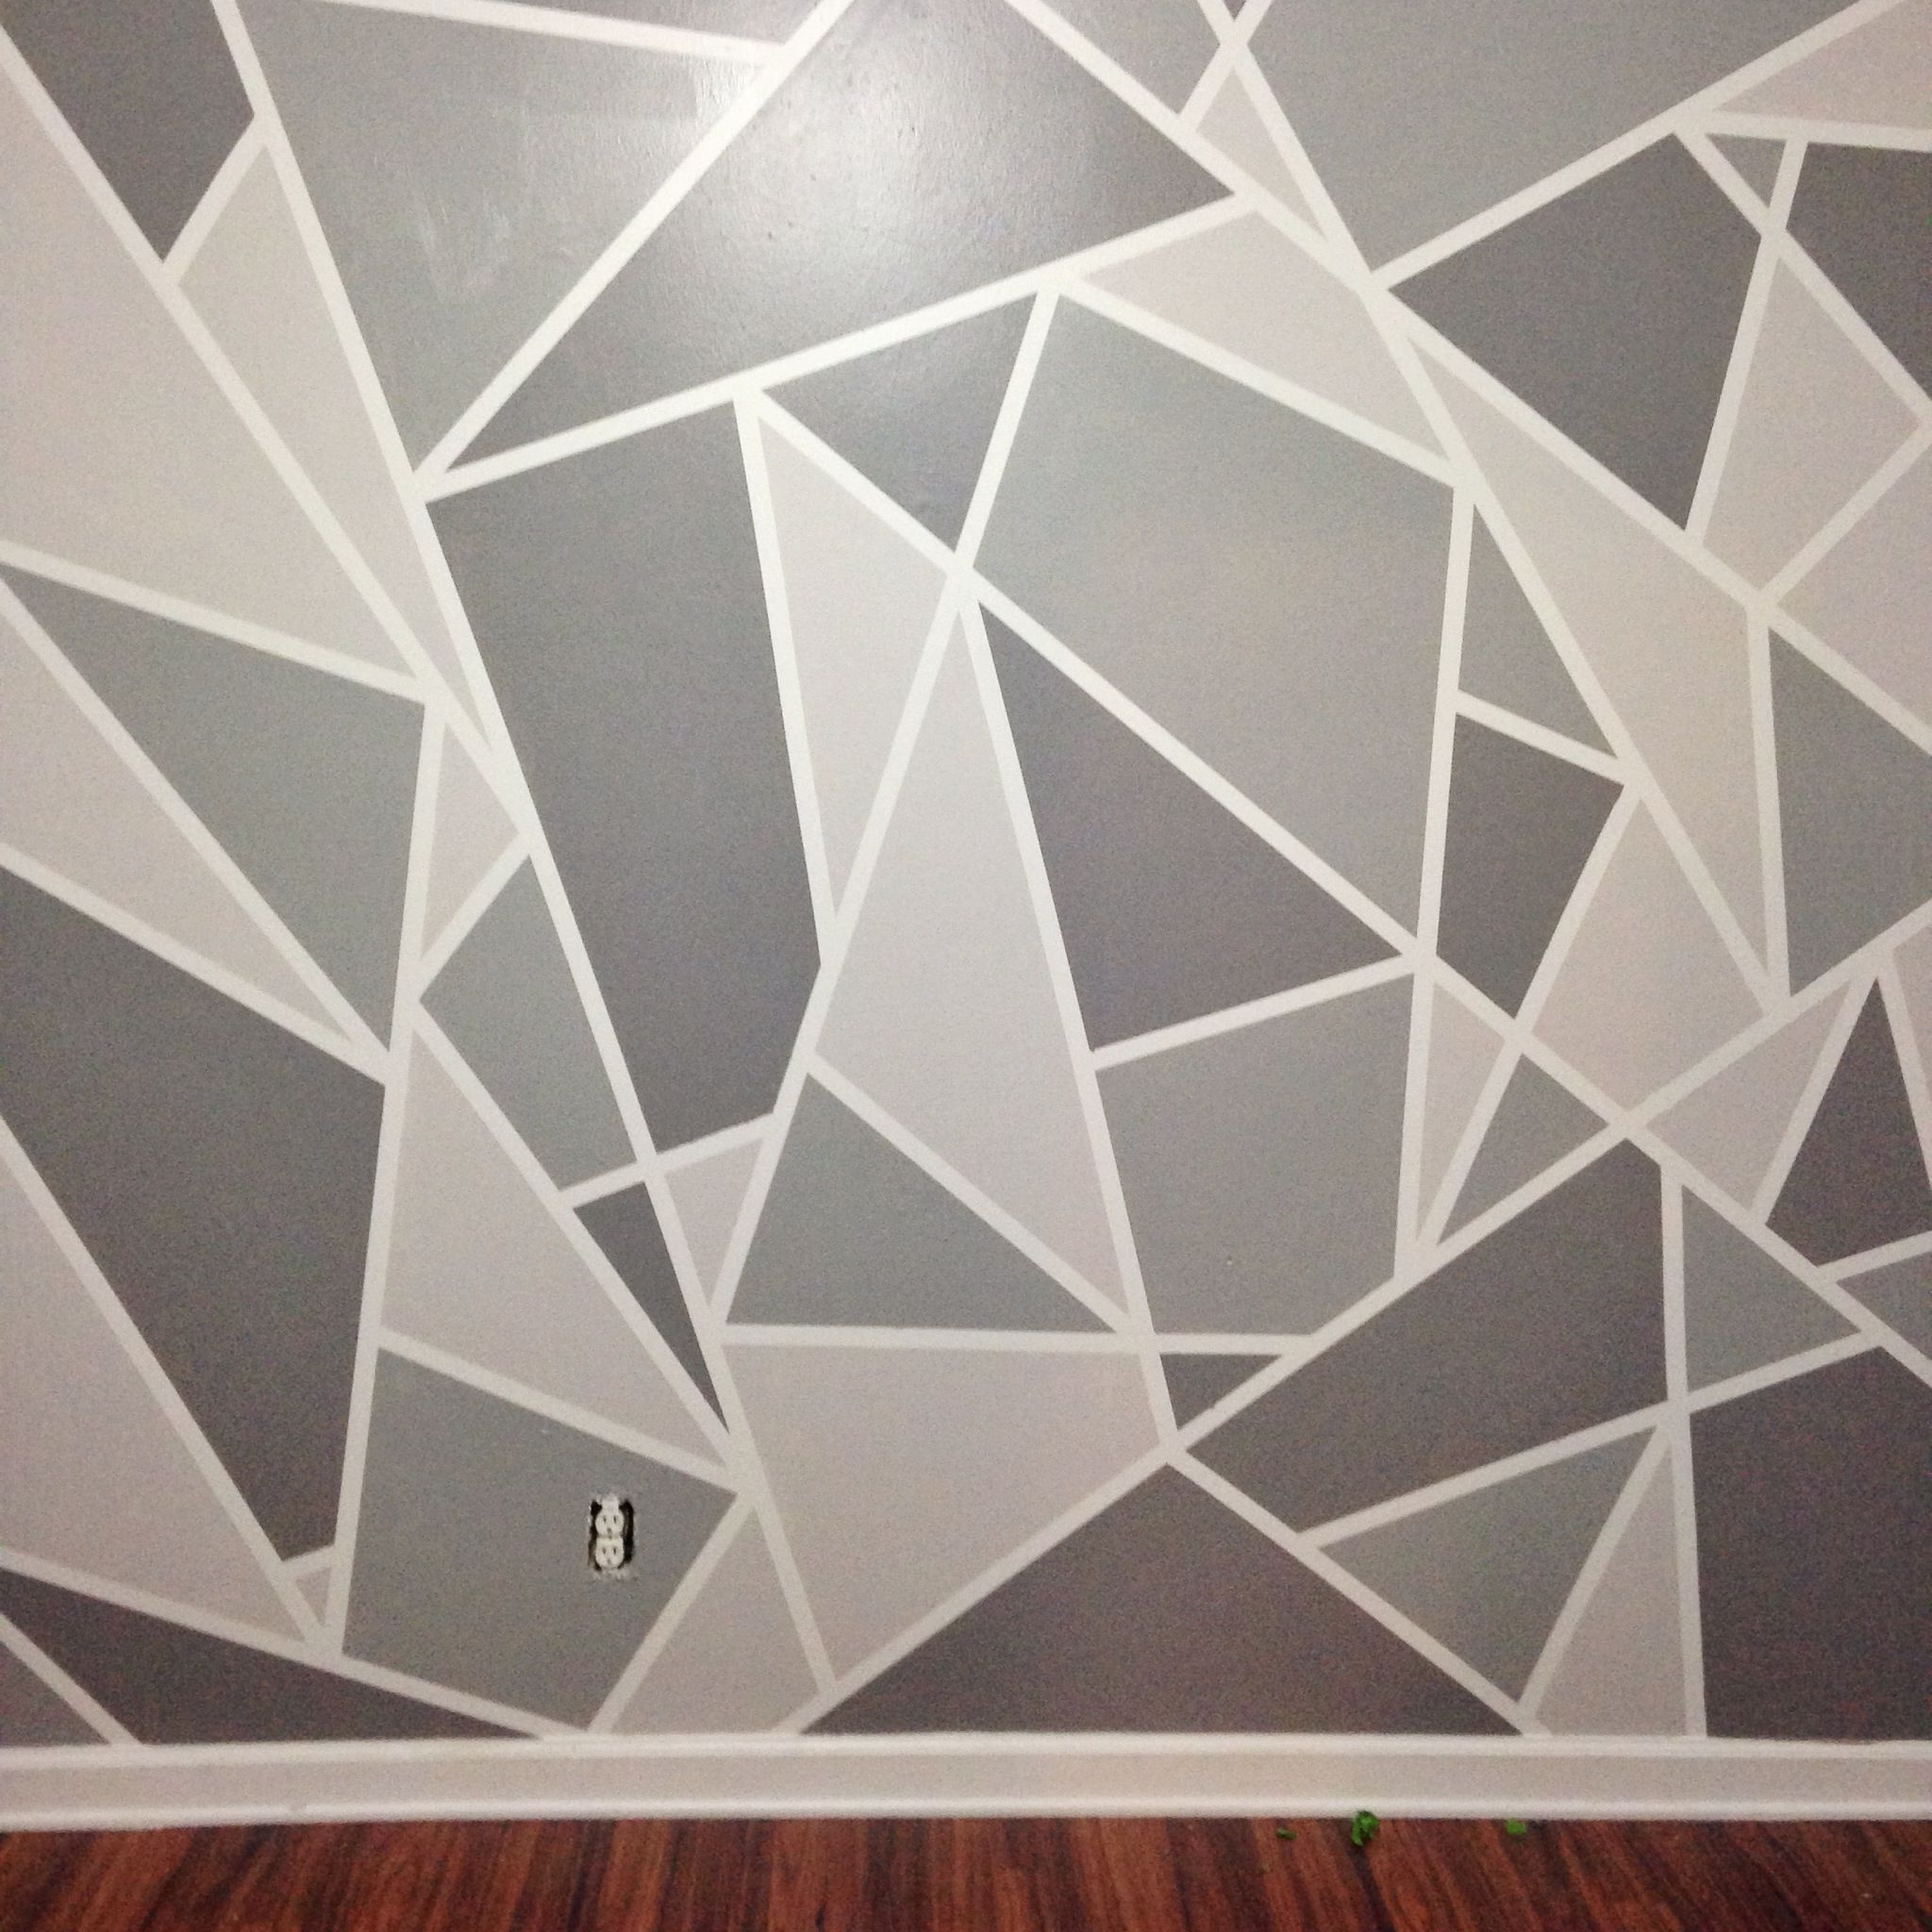 15 Best Collection Of 3d Triangle Wall Art